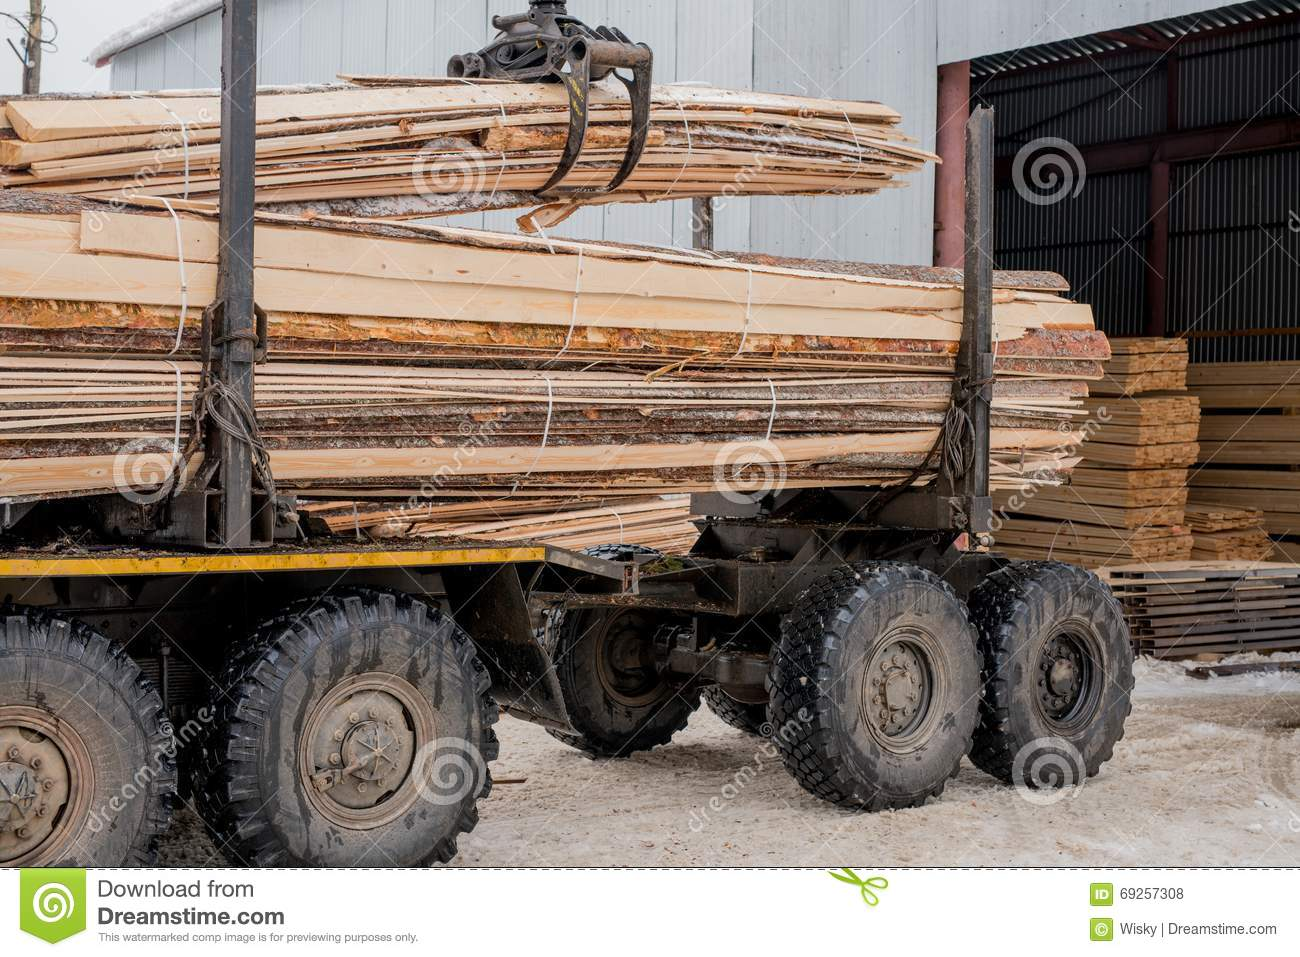 Sawmill. Image of truck transports boards